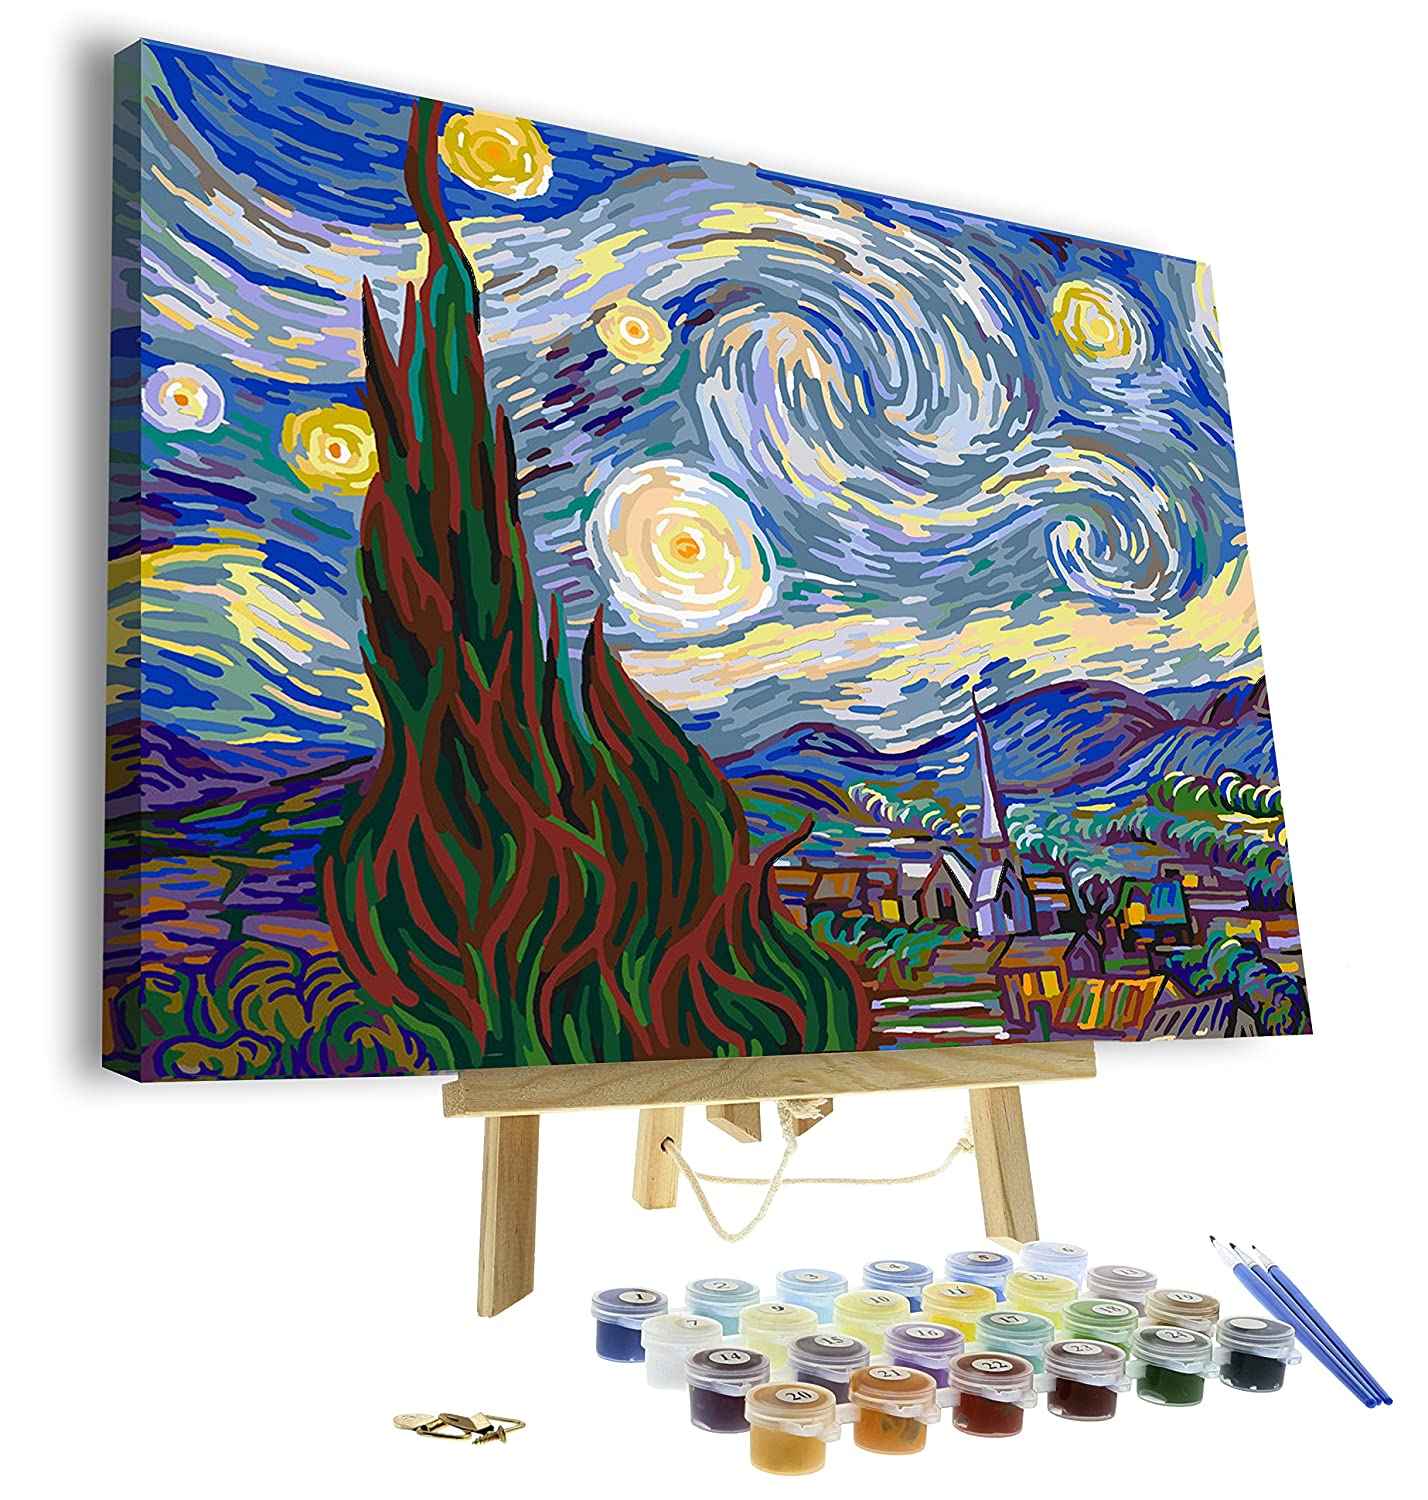 Paint by numbers for adults framed canvas and wooden easel stand diy full set of assorted color oil painting kit and brush accessories van gogh the